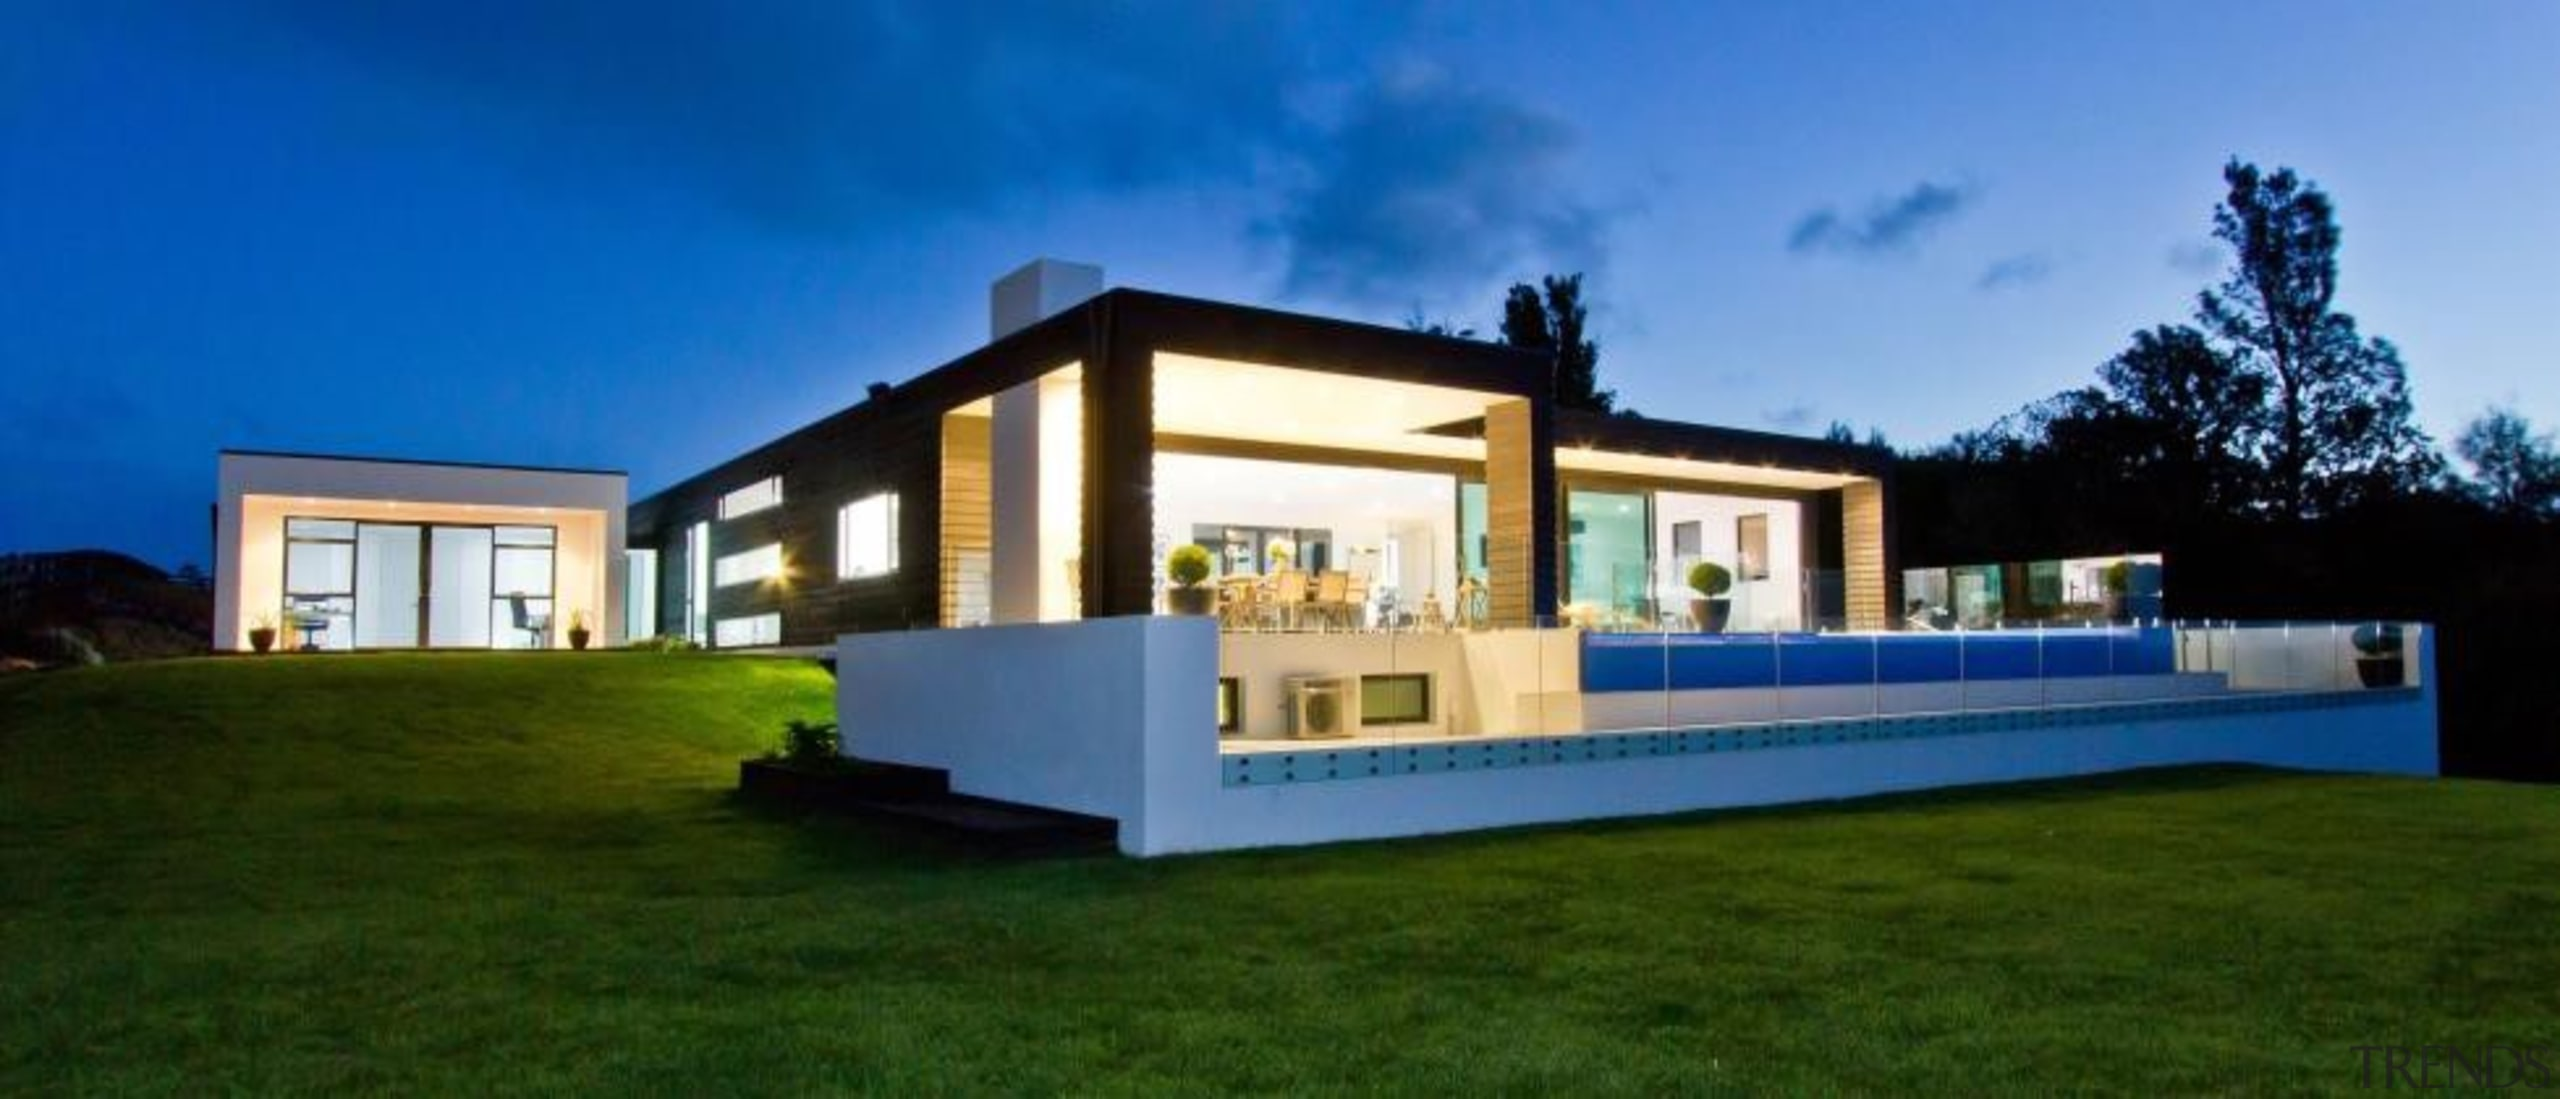 A contemporary house design by Design House Architecture architecture, cottage, elevation, estate, facade, home, house, property, real estate, residential area, villa, blue